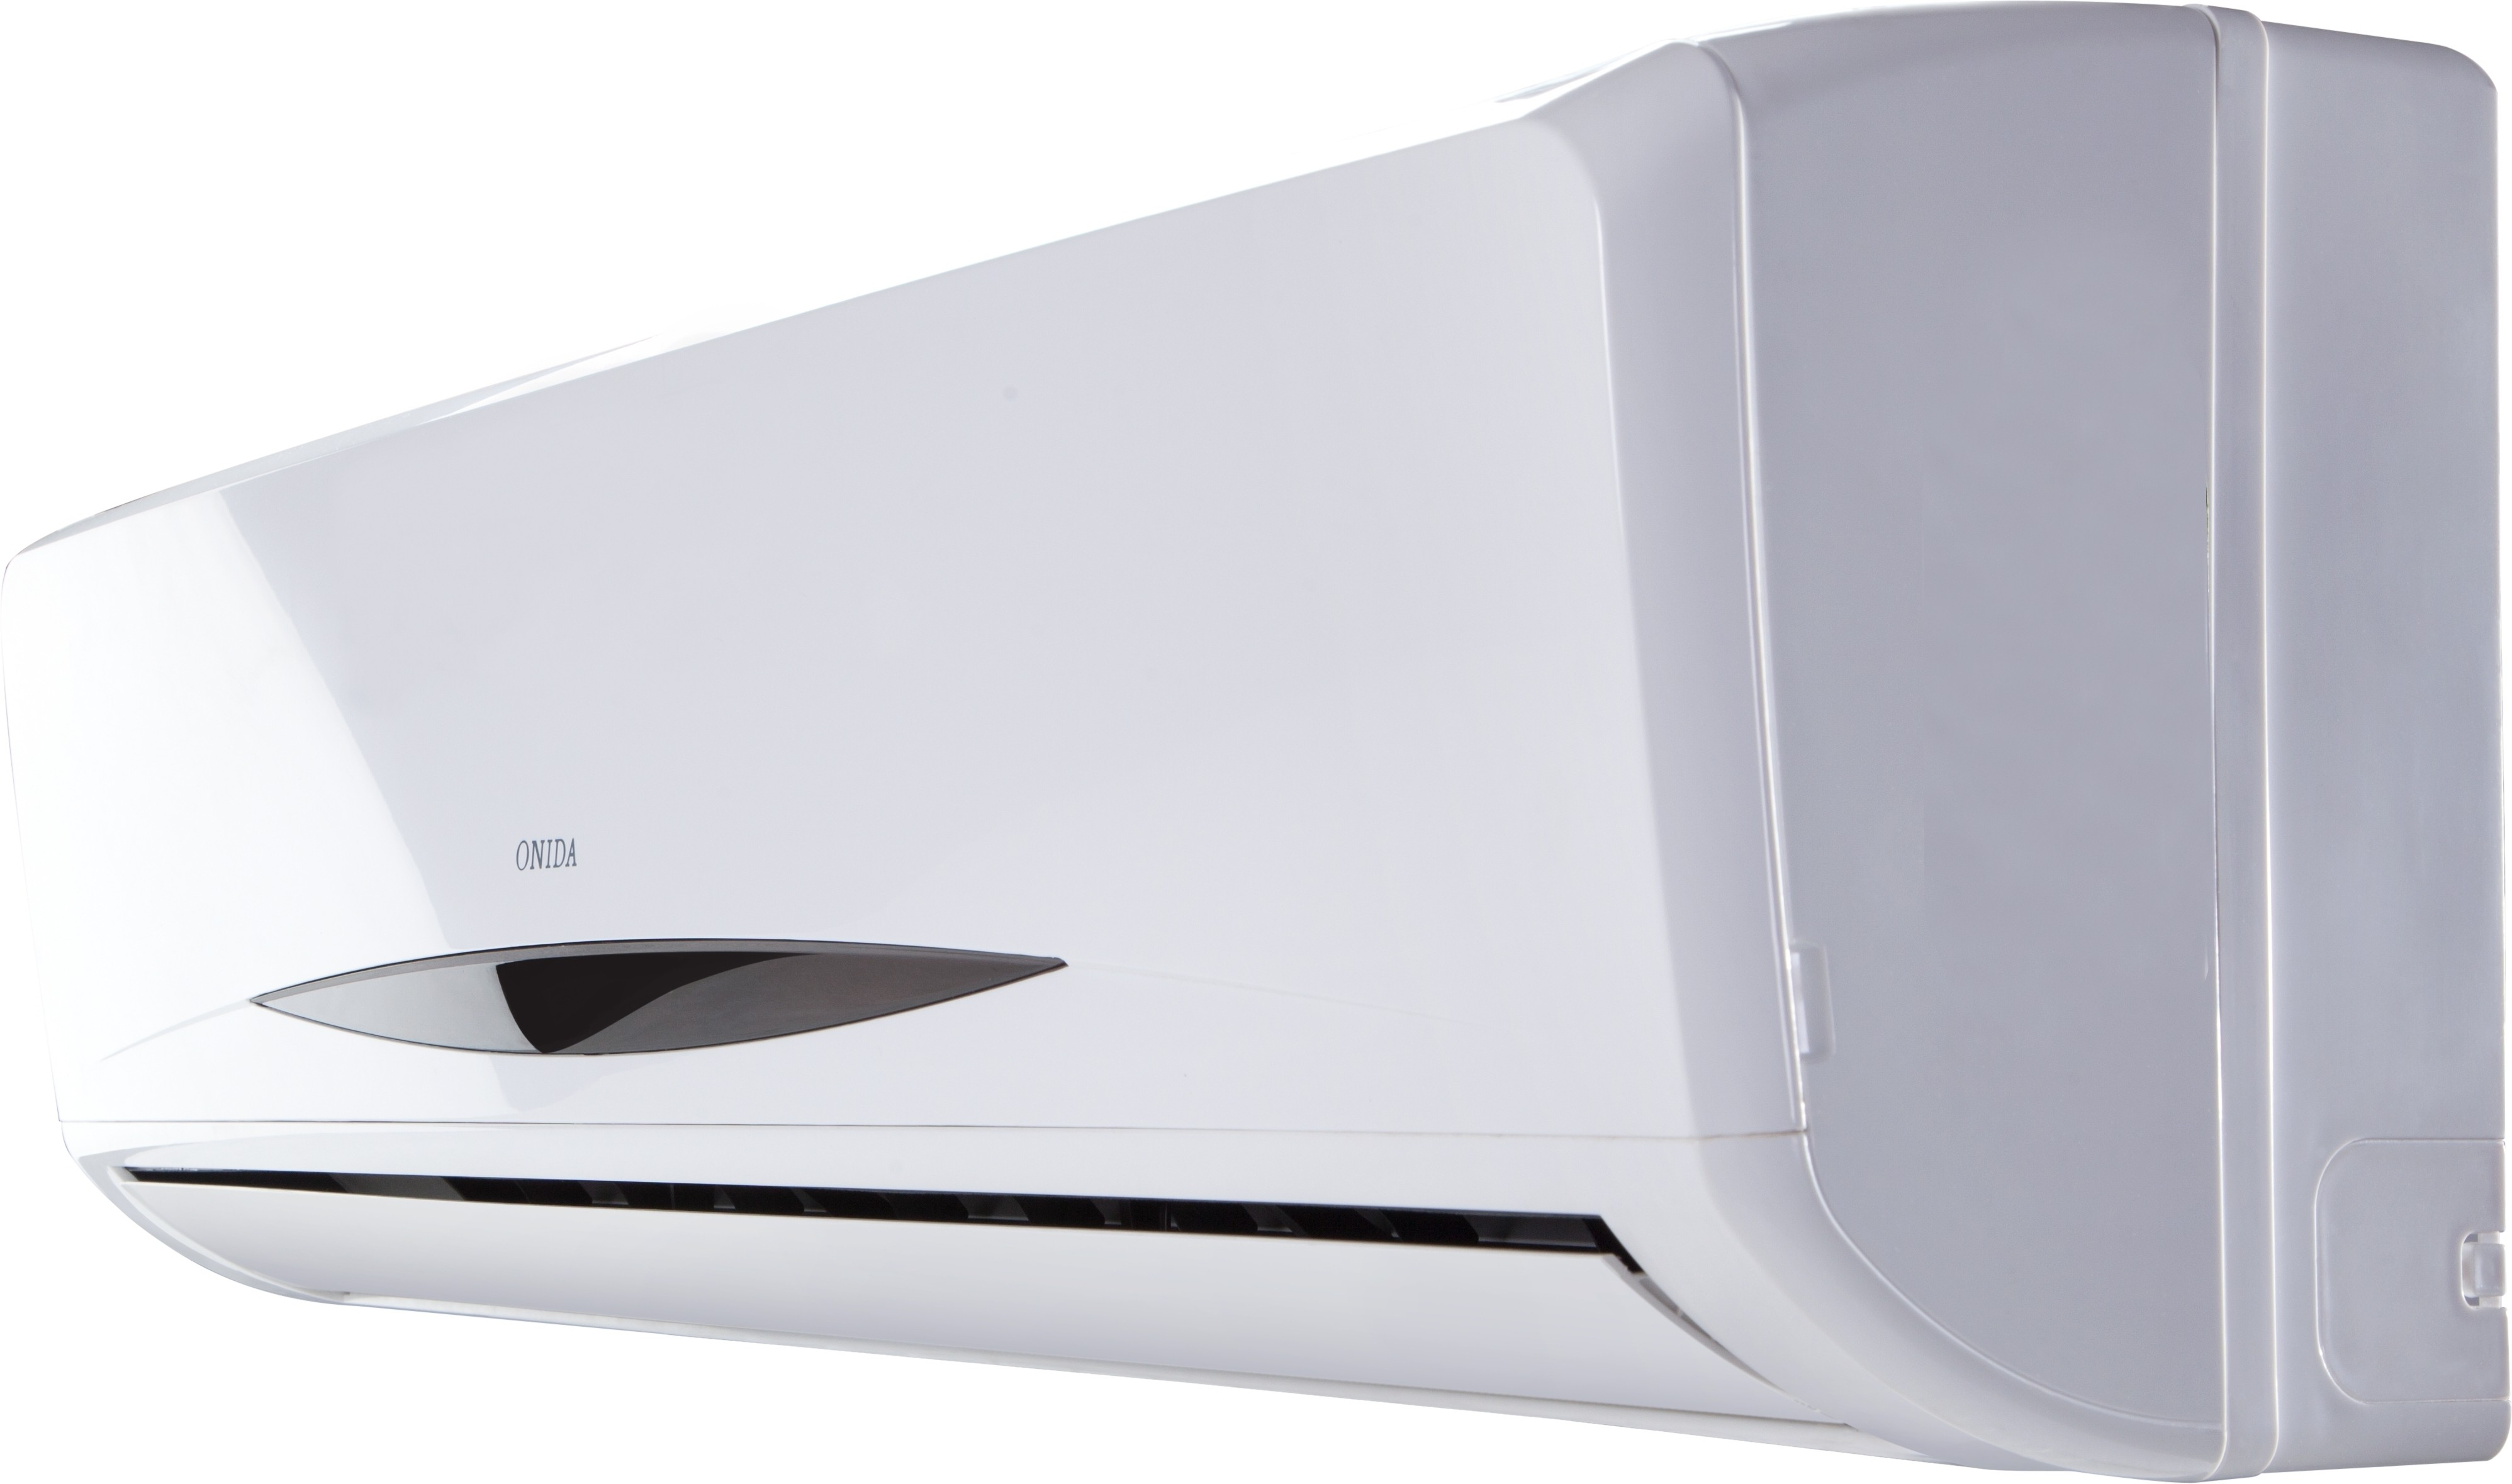 Daikin FTKP35PRV16 1 Ton Inverter Split AC (Delivery In 48 Hrs) price  #5B5E70